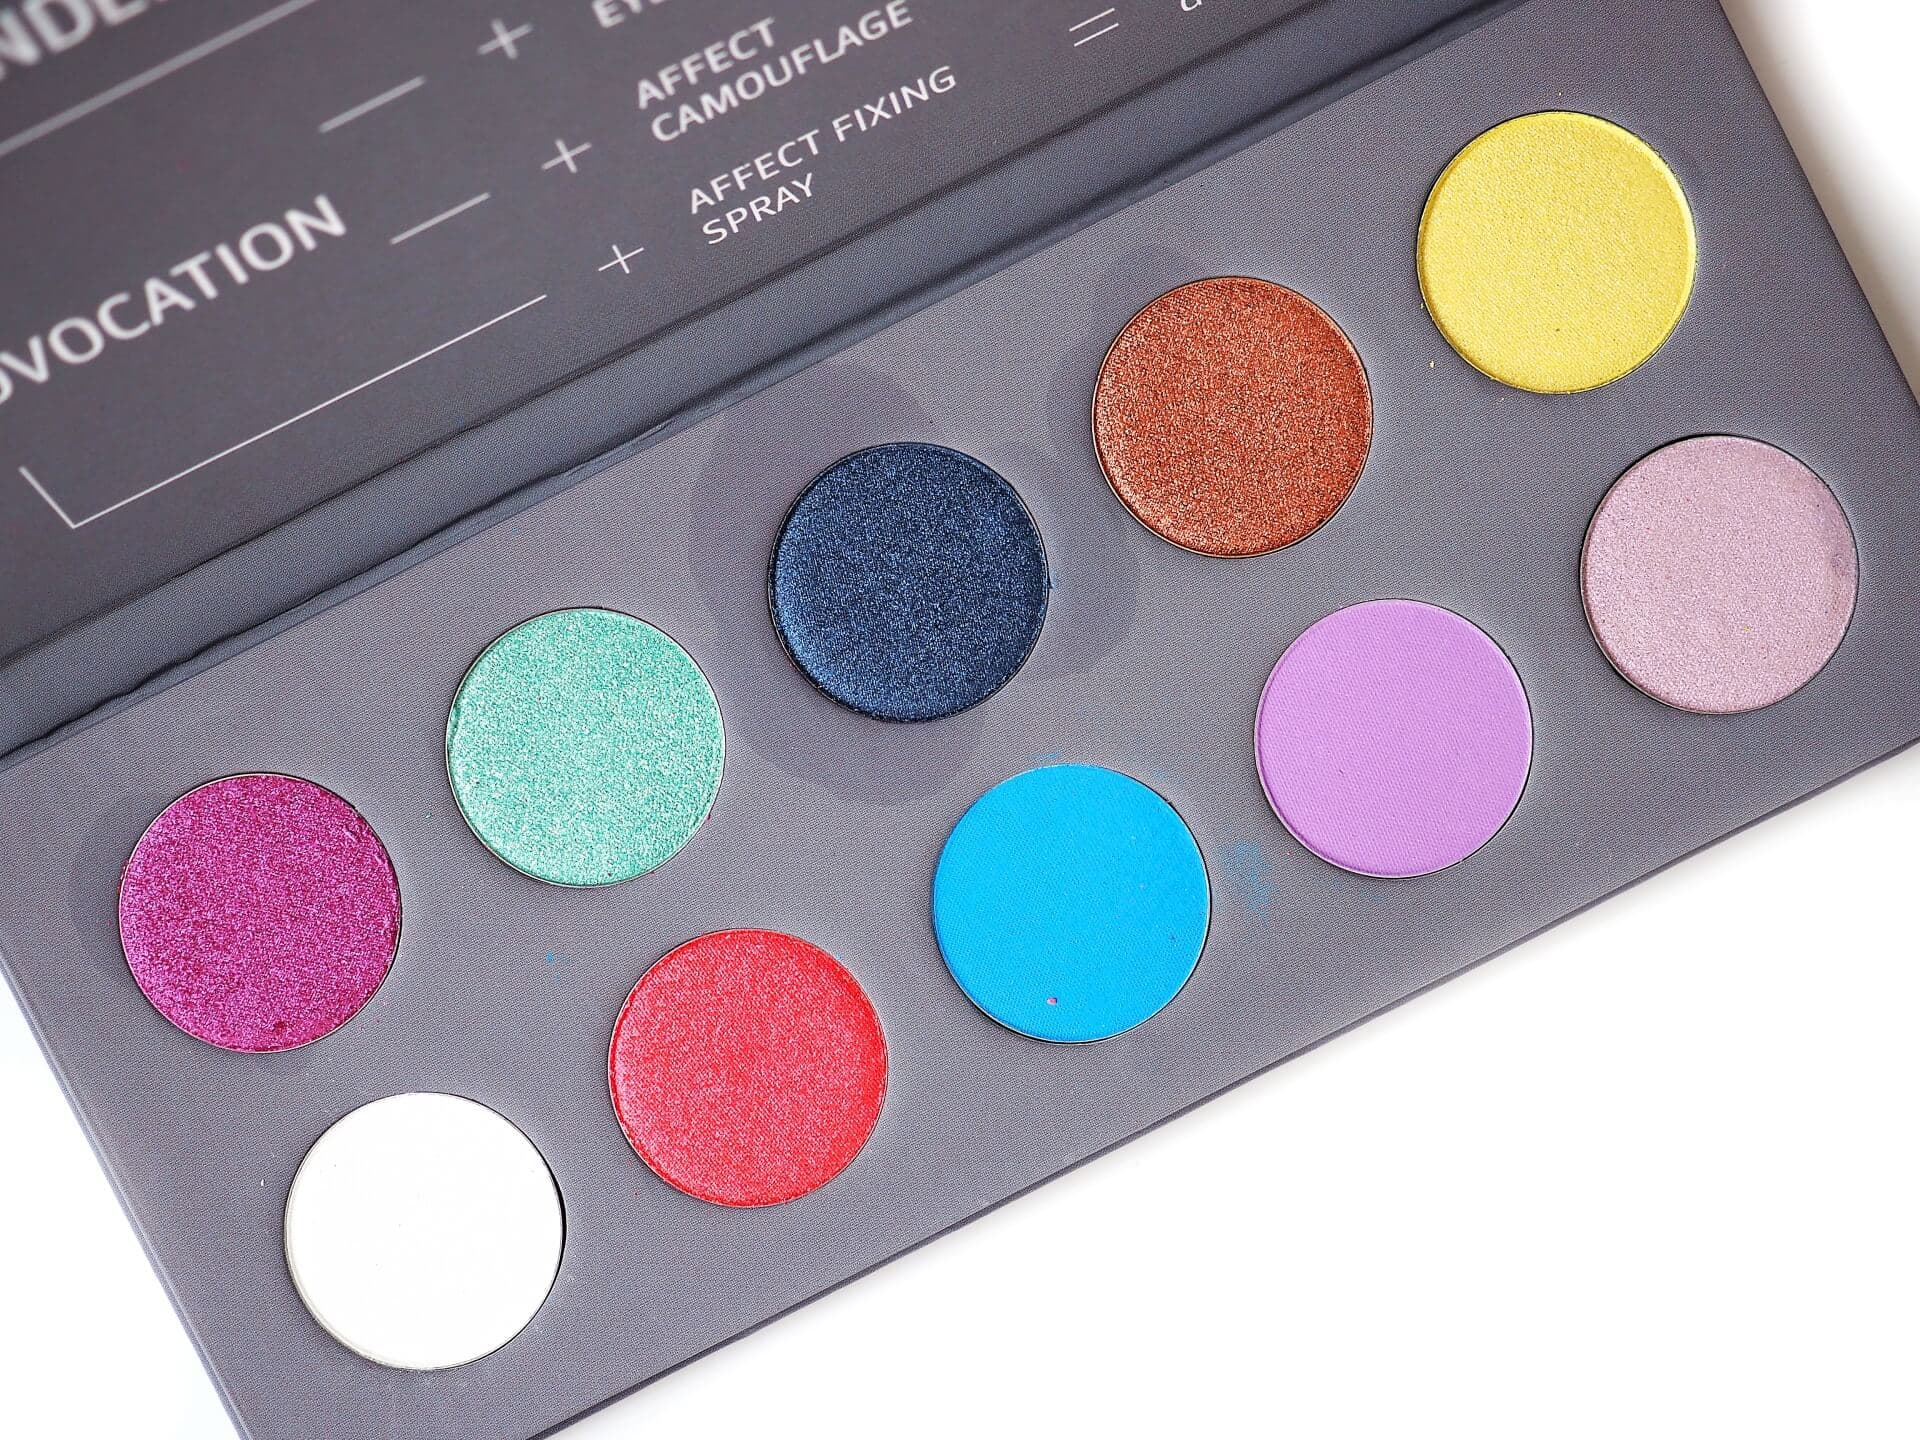 RECENZJA AFFECT PROVOCATION EYESHADOW PALETTE